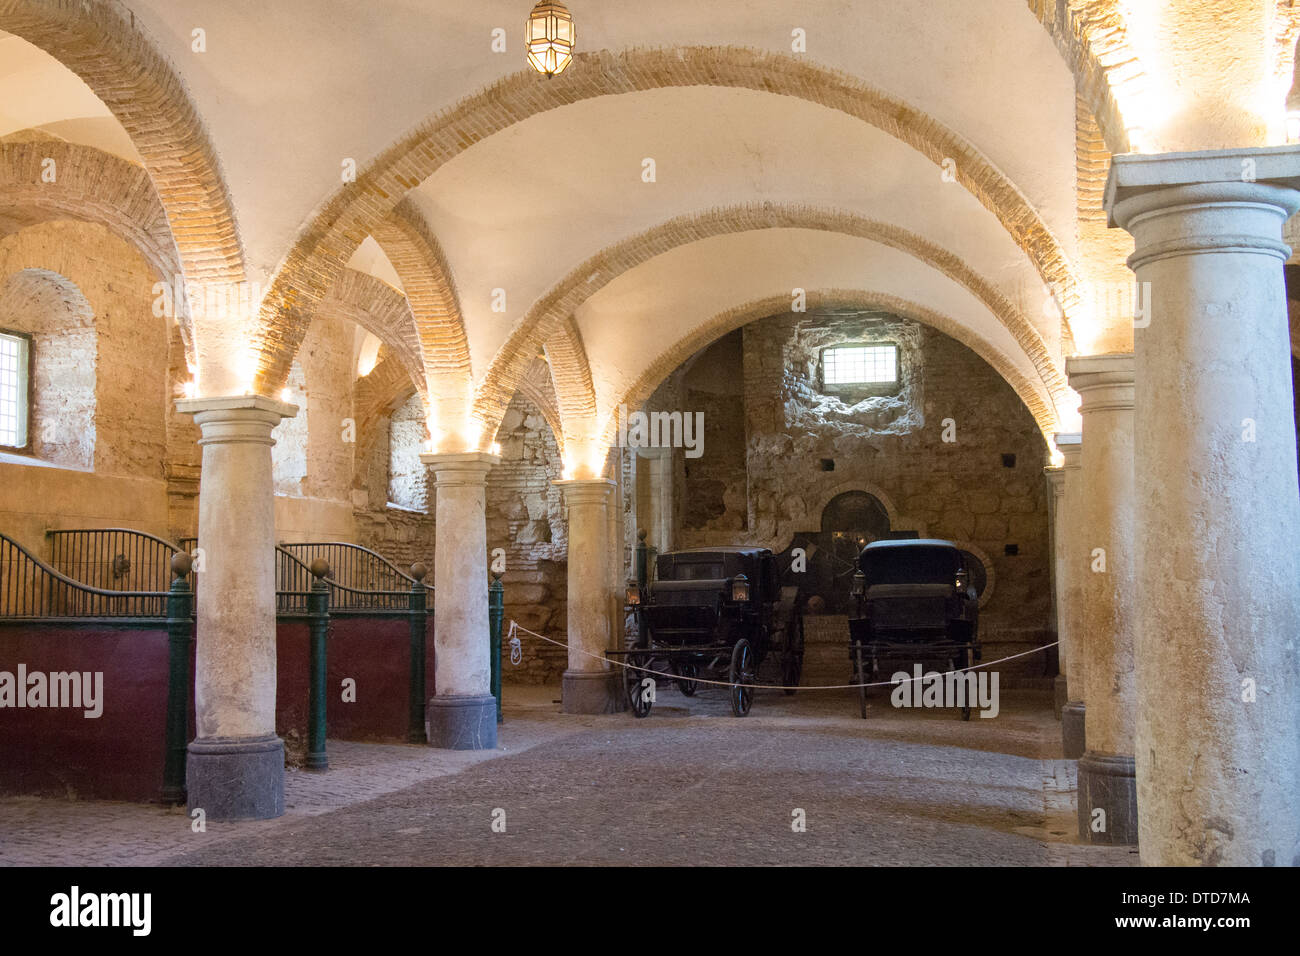 Royal Stables, Cordoba, Andalucia, Spain. - Stock Image